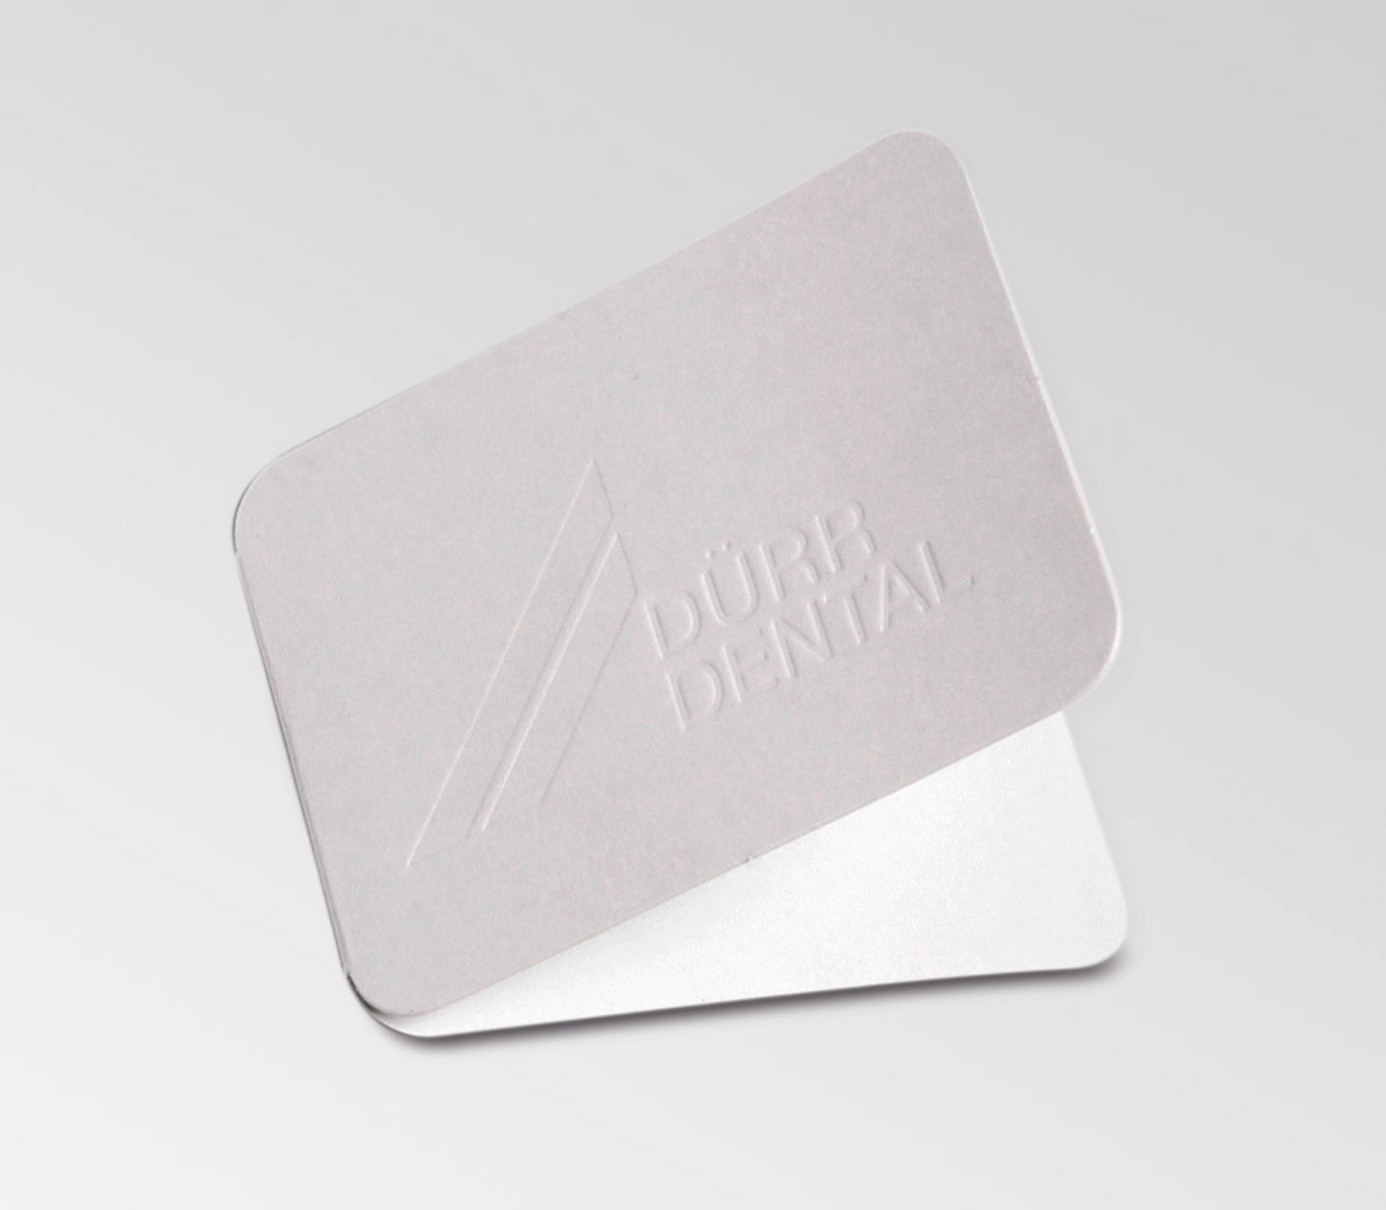 Durr VistaScan Barrier Envelope white Available for Sizes 1 and 2